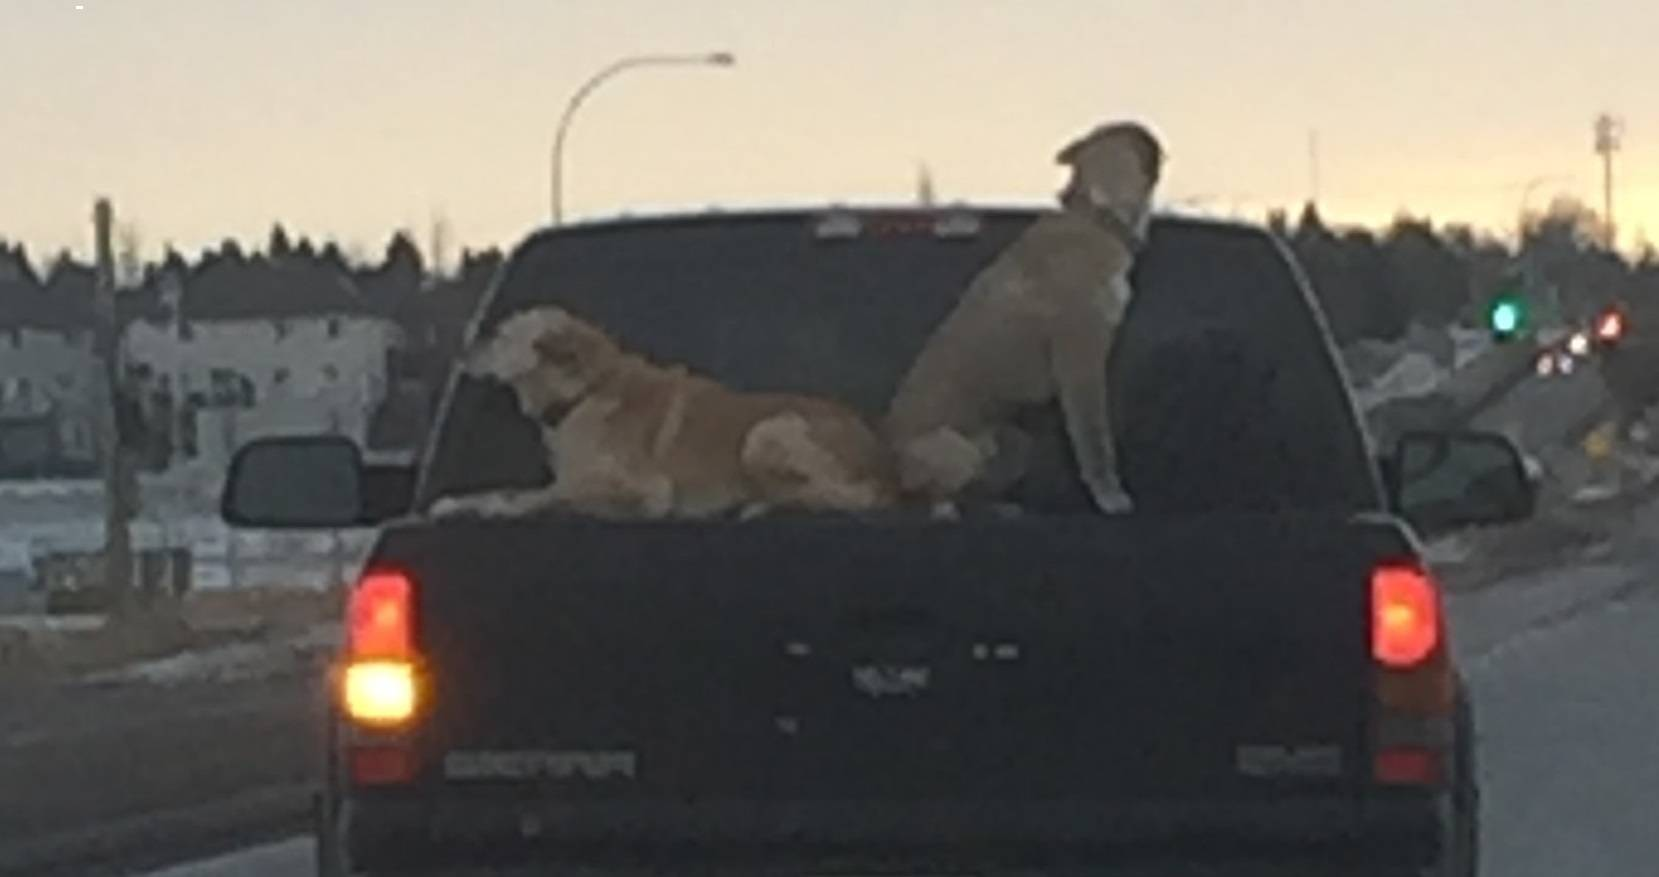 SPCA DECIDES TO NOT CHARGE DRIVER OF TRUCK THAT HAD DOGS RIDING ON A TRUCK BED COVER